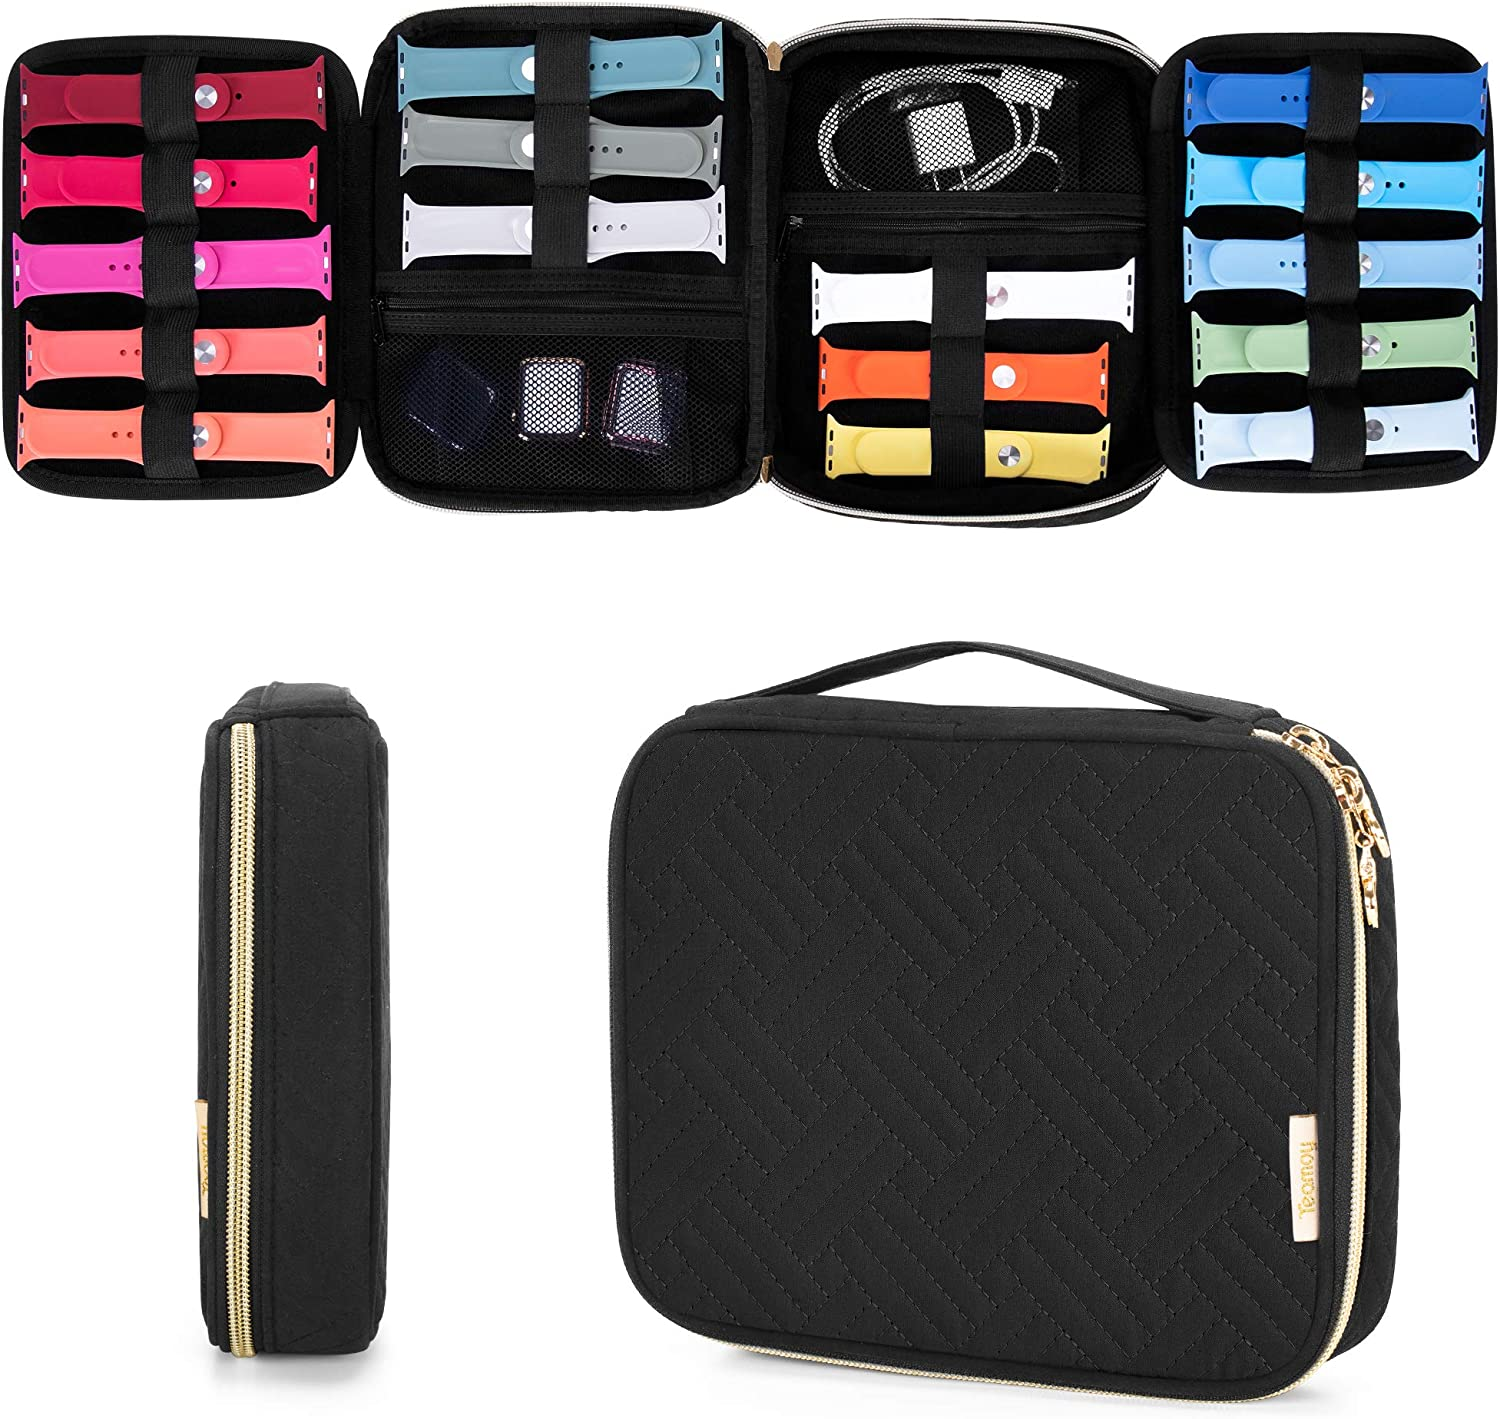 Teamoy Watch Band Storage Case Holds 26 Watch Straps, Travel Organizer Bag Compatible for All Series of Apple Watch Bands and Accessories, Quilted Black